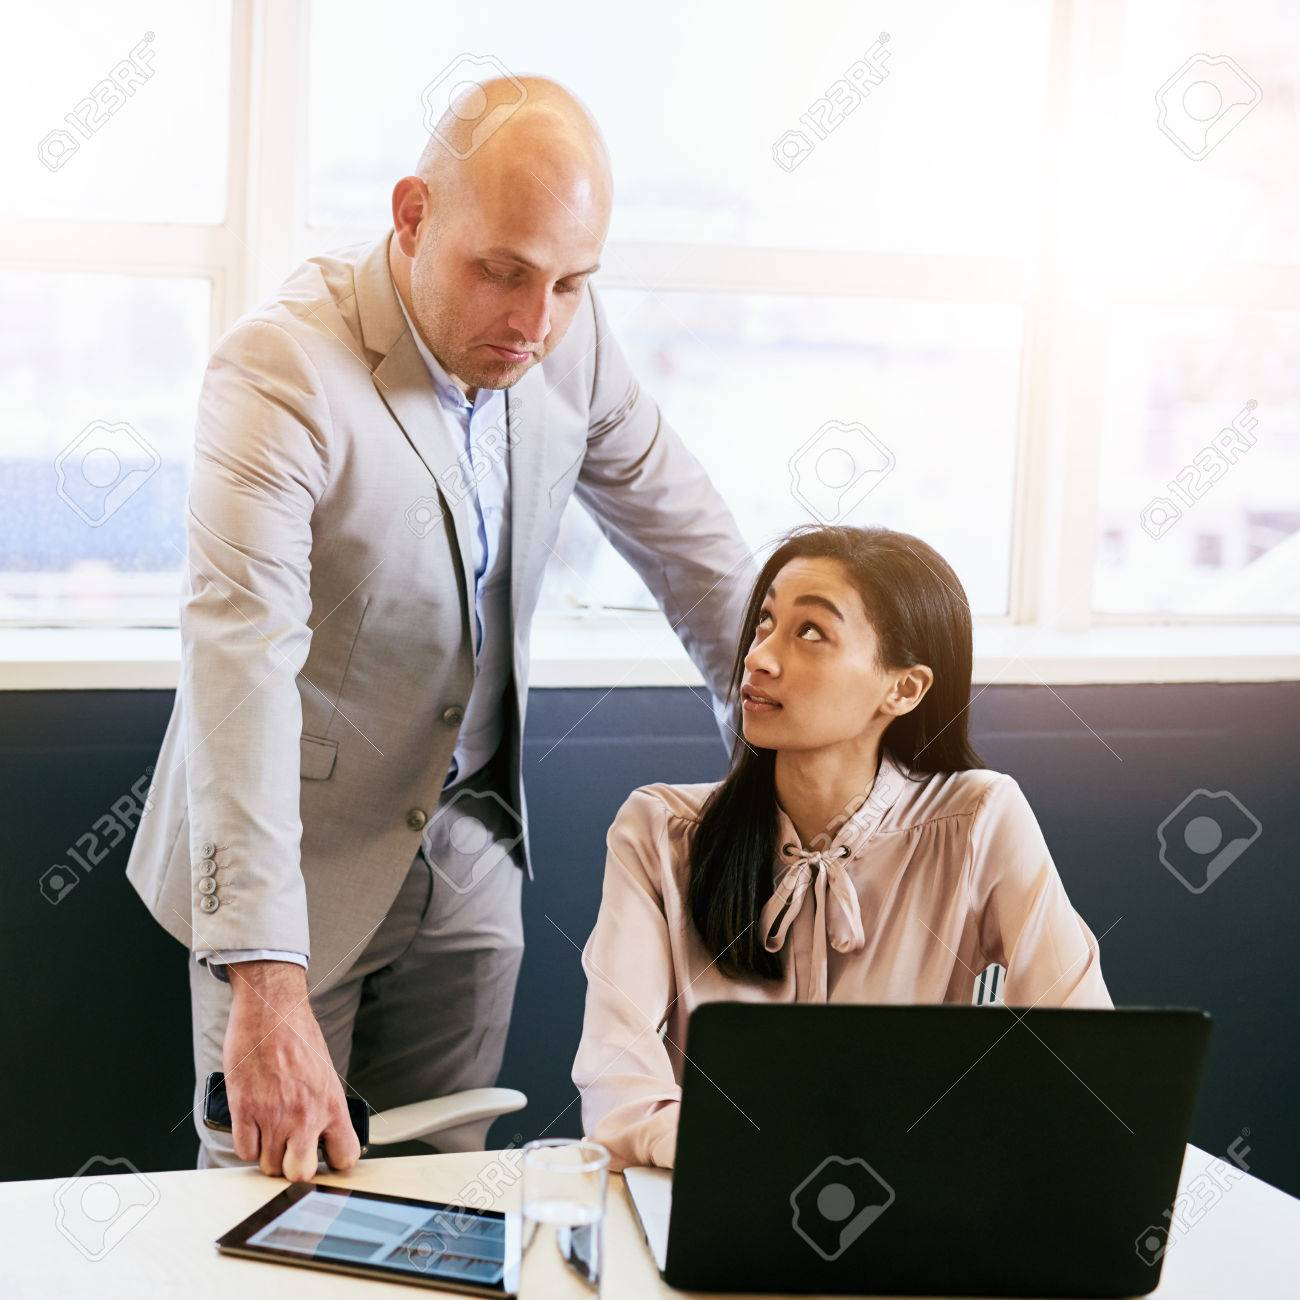 supervisor impressed the quality of work being done by his stock photo supervisor impressed the quality of work being done by his newly appointed female assistant who is working on a laptop and tablet while